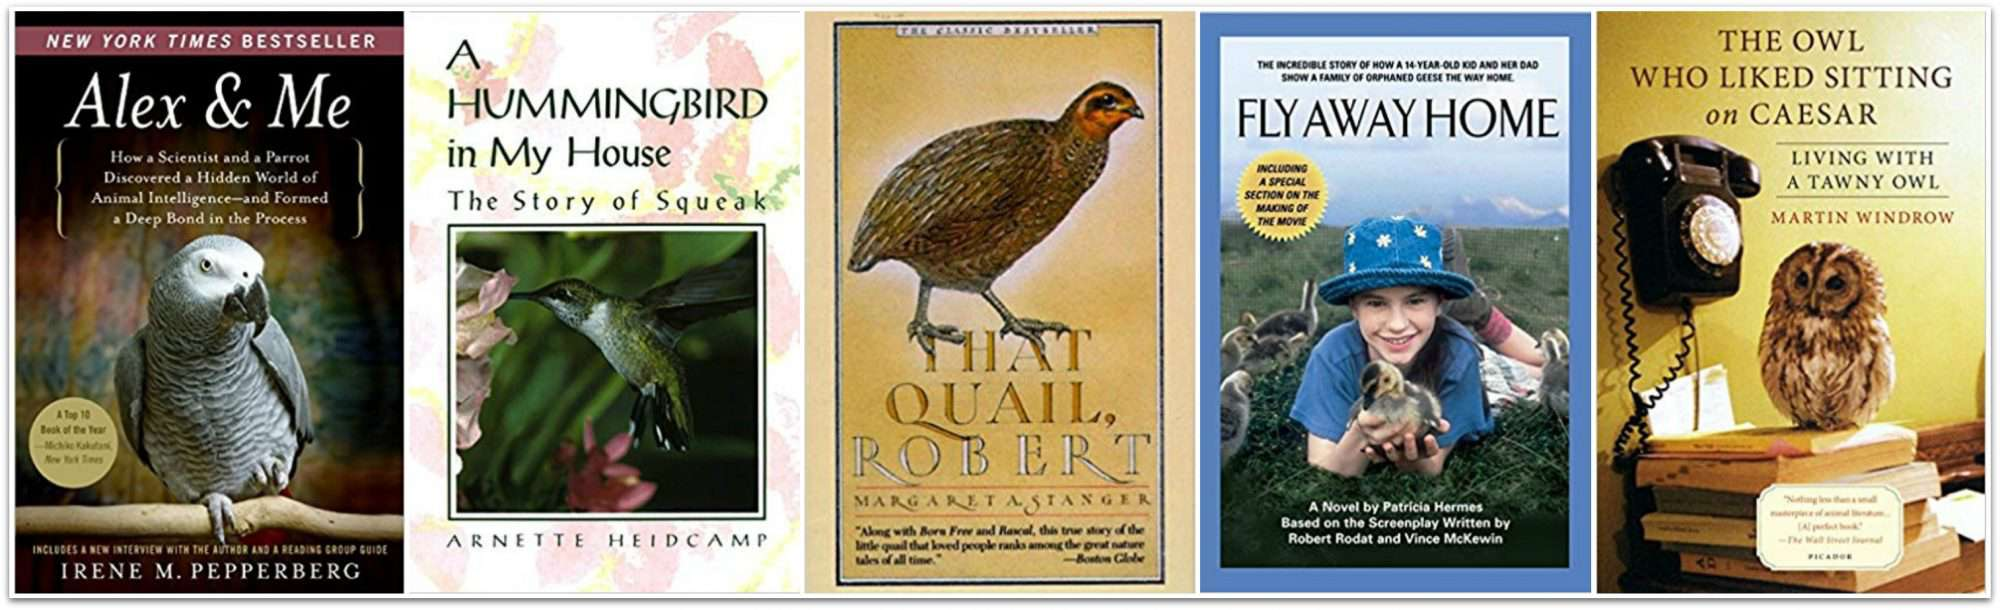 57 K - Gr. 5 True Story Nature & Science Books For Curious Kids. 5 books about animals that lived closely with humans on the reading list.